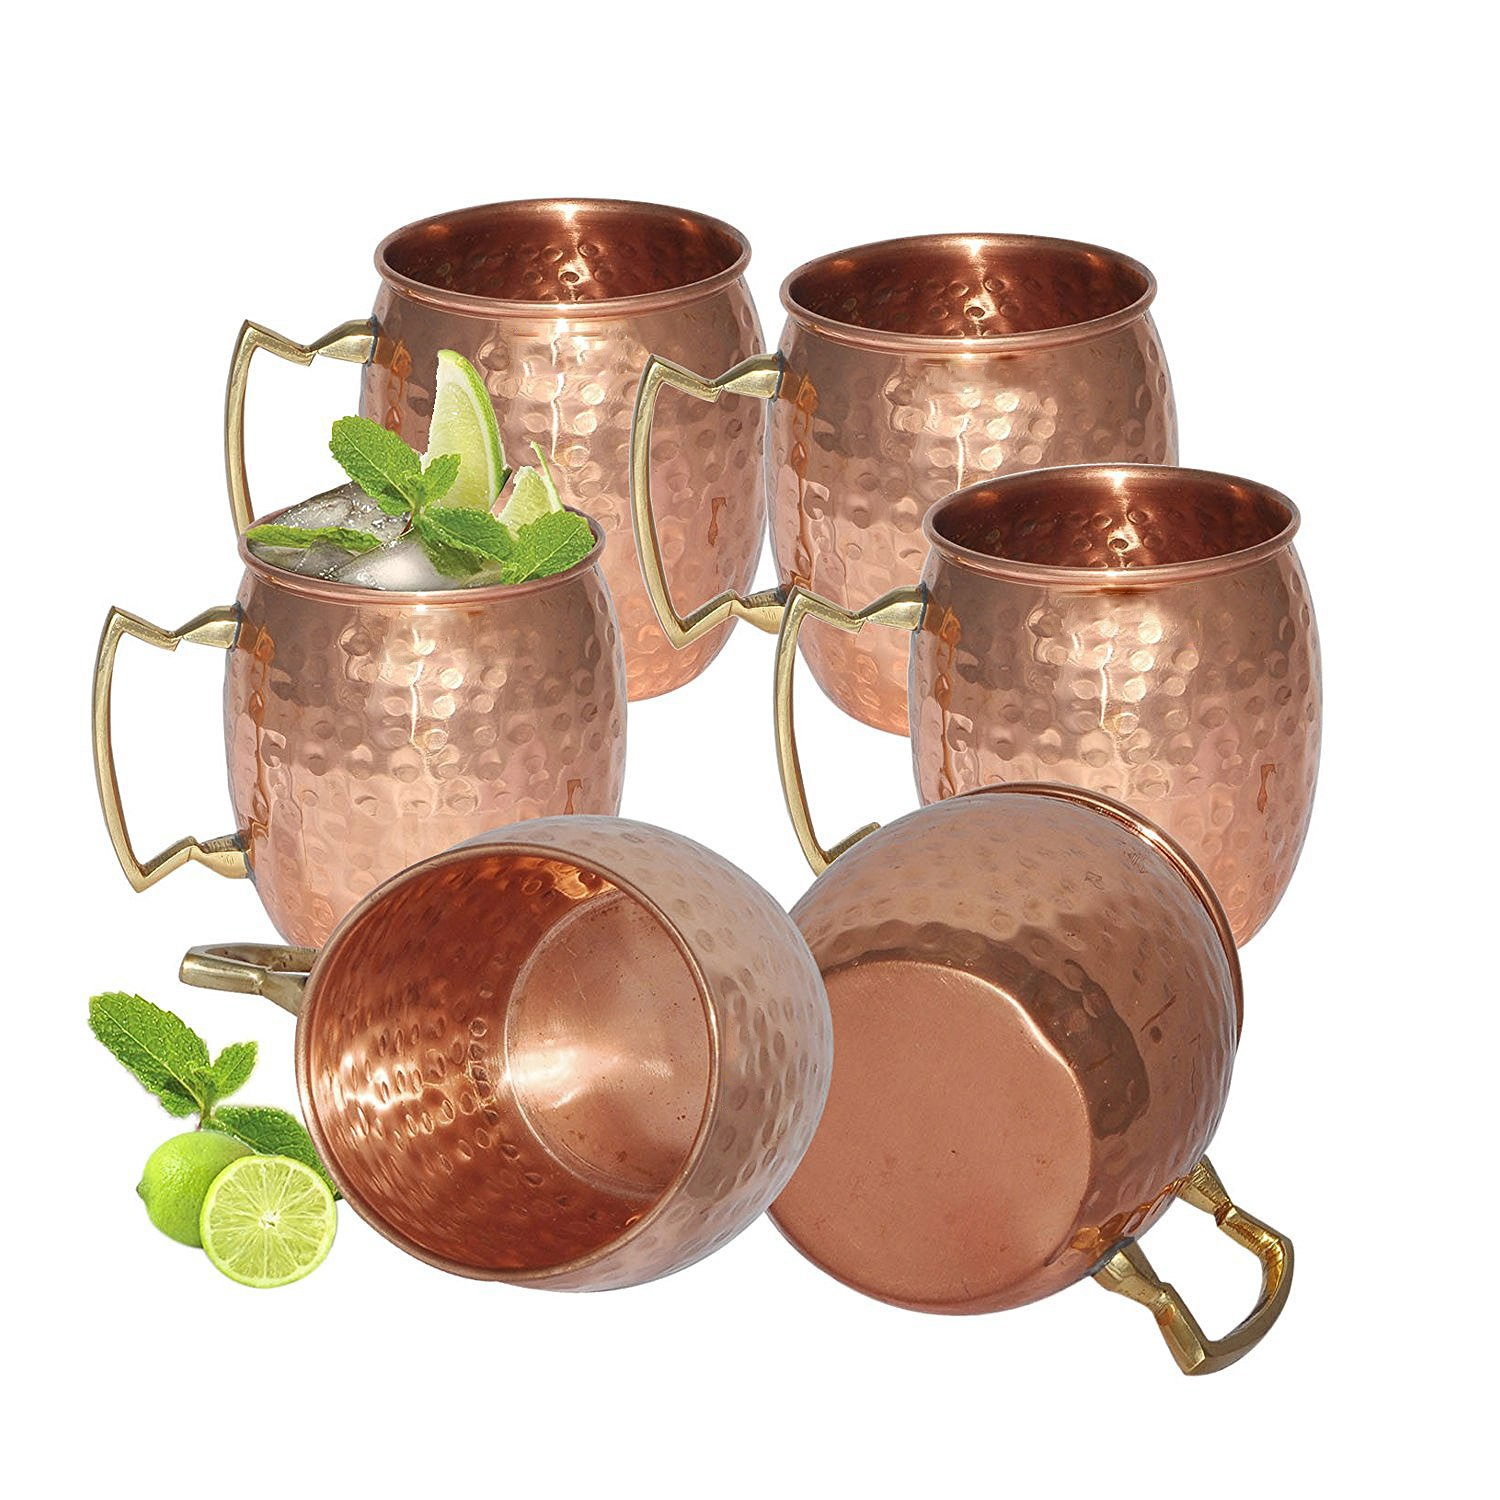 Avs Stores Pure copper hammered cup Moscow Mule Set of 6 Avs Stores ® SYNCHKG098000